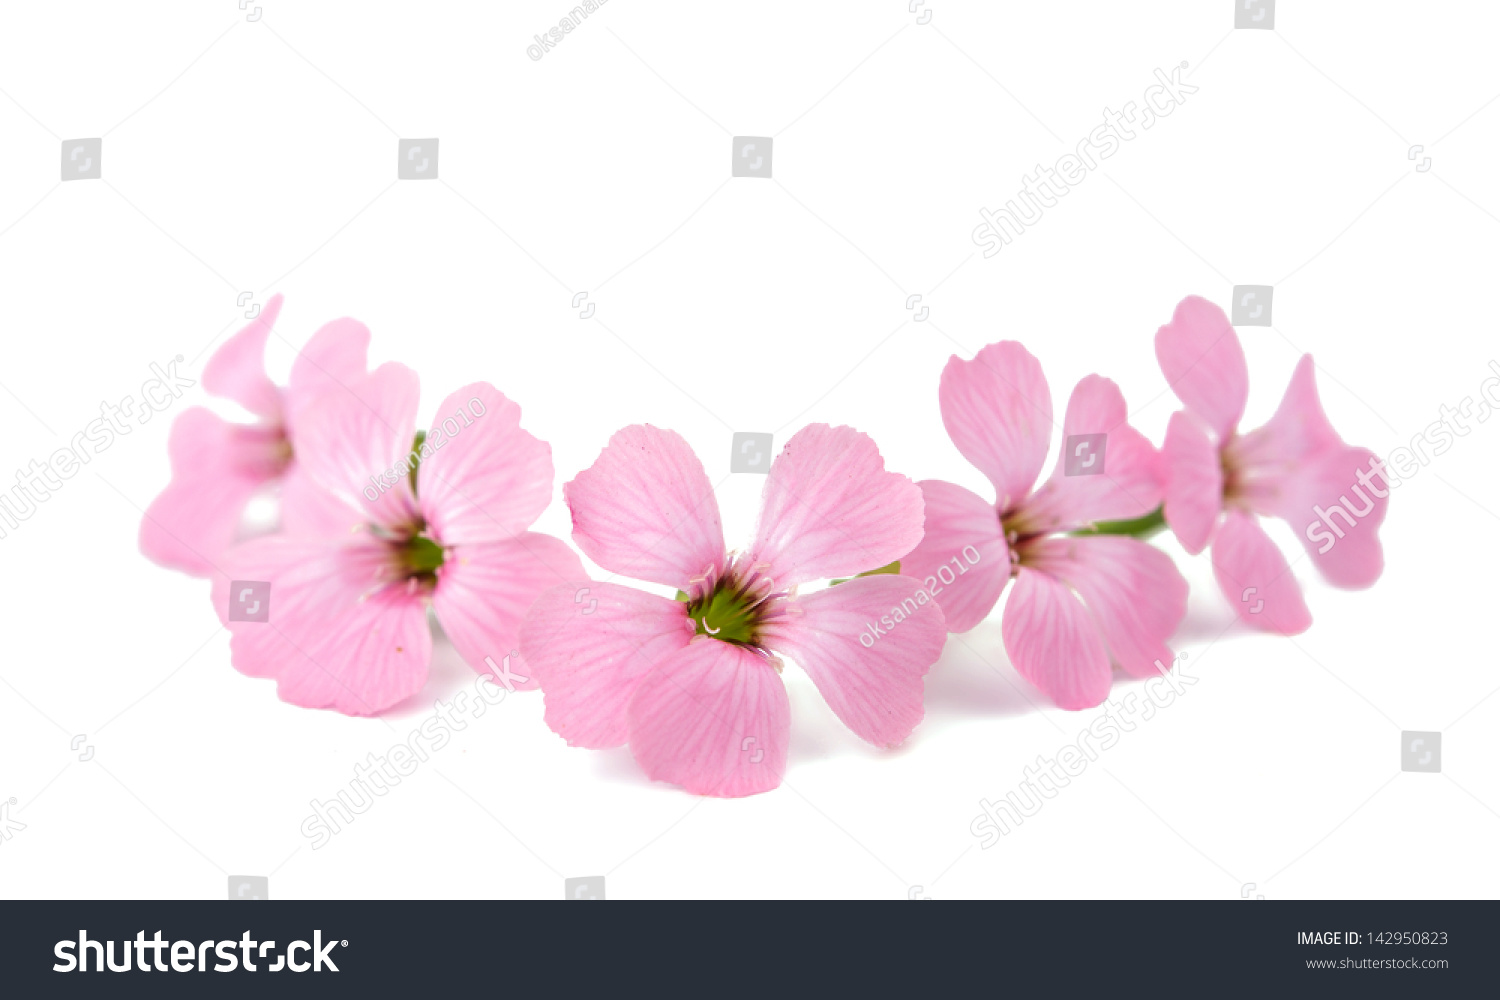 Delicate Pink Flowers On A White Background Ez Canvas